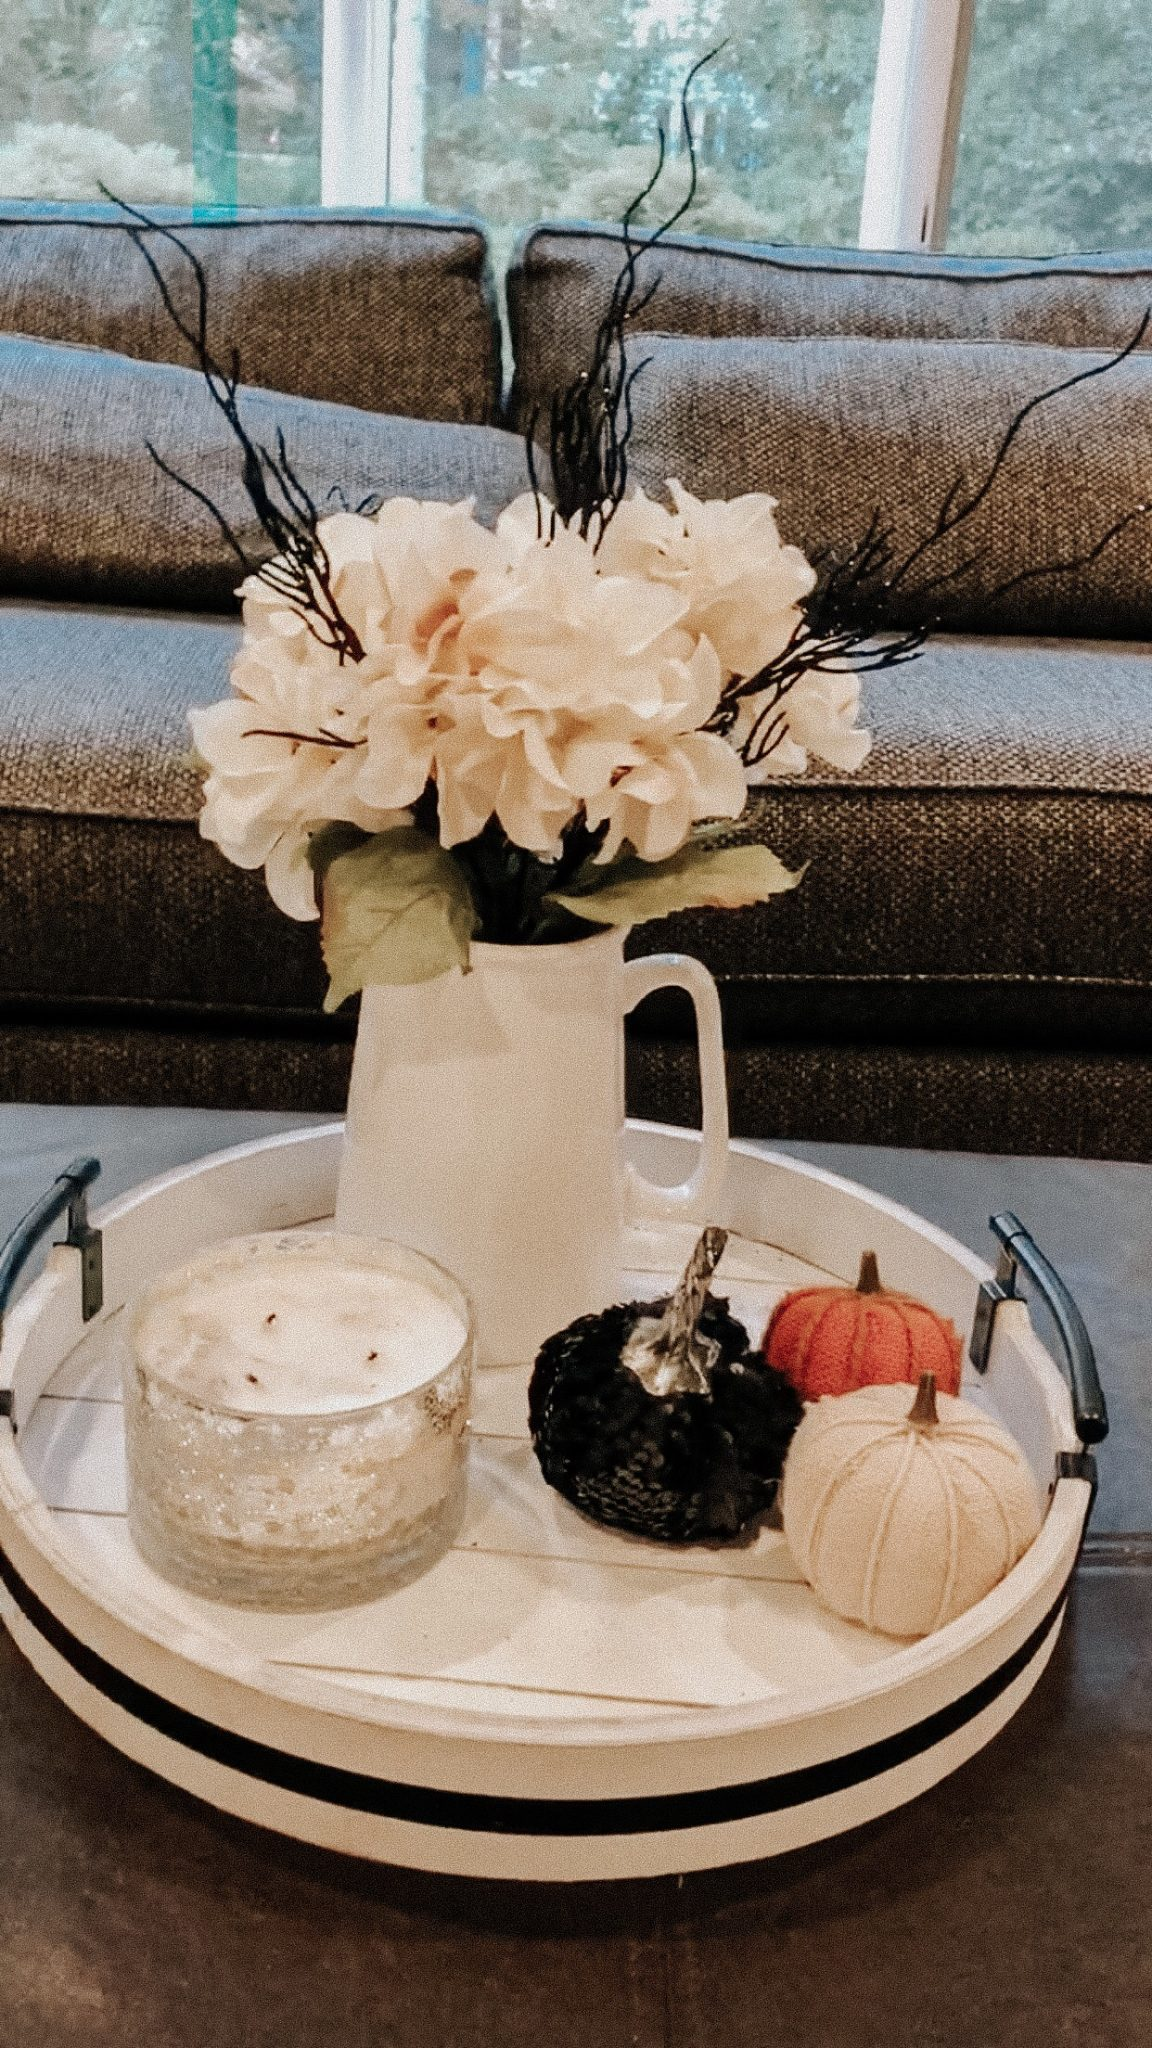 Halloween Decorating Ideas | Daily Splendor Life and Style Blog | Budget decorations #halloween #sppokyseason #halloweendecor #budgethalloweendecorations #halloweentray #halloweenflowers